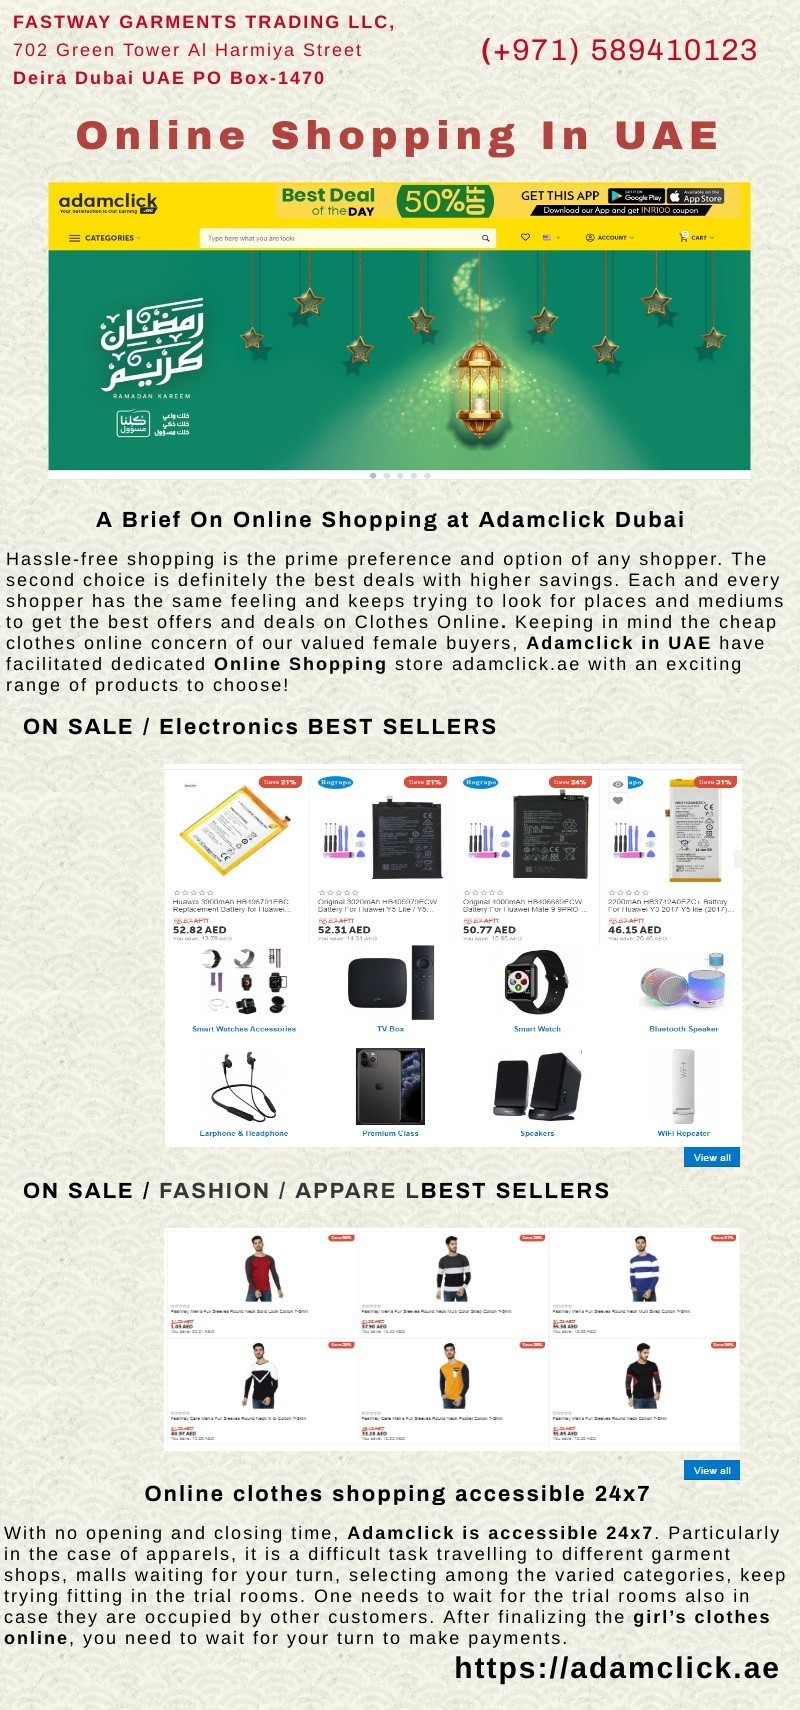 Online Shopping in UAE